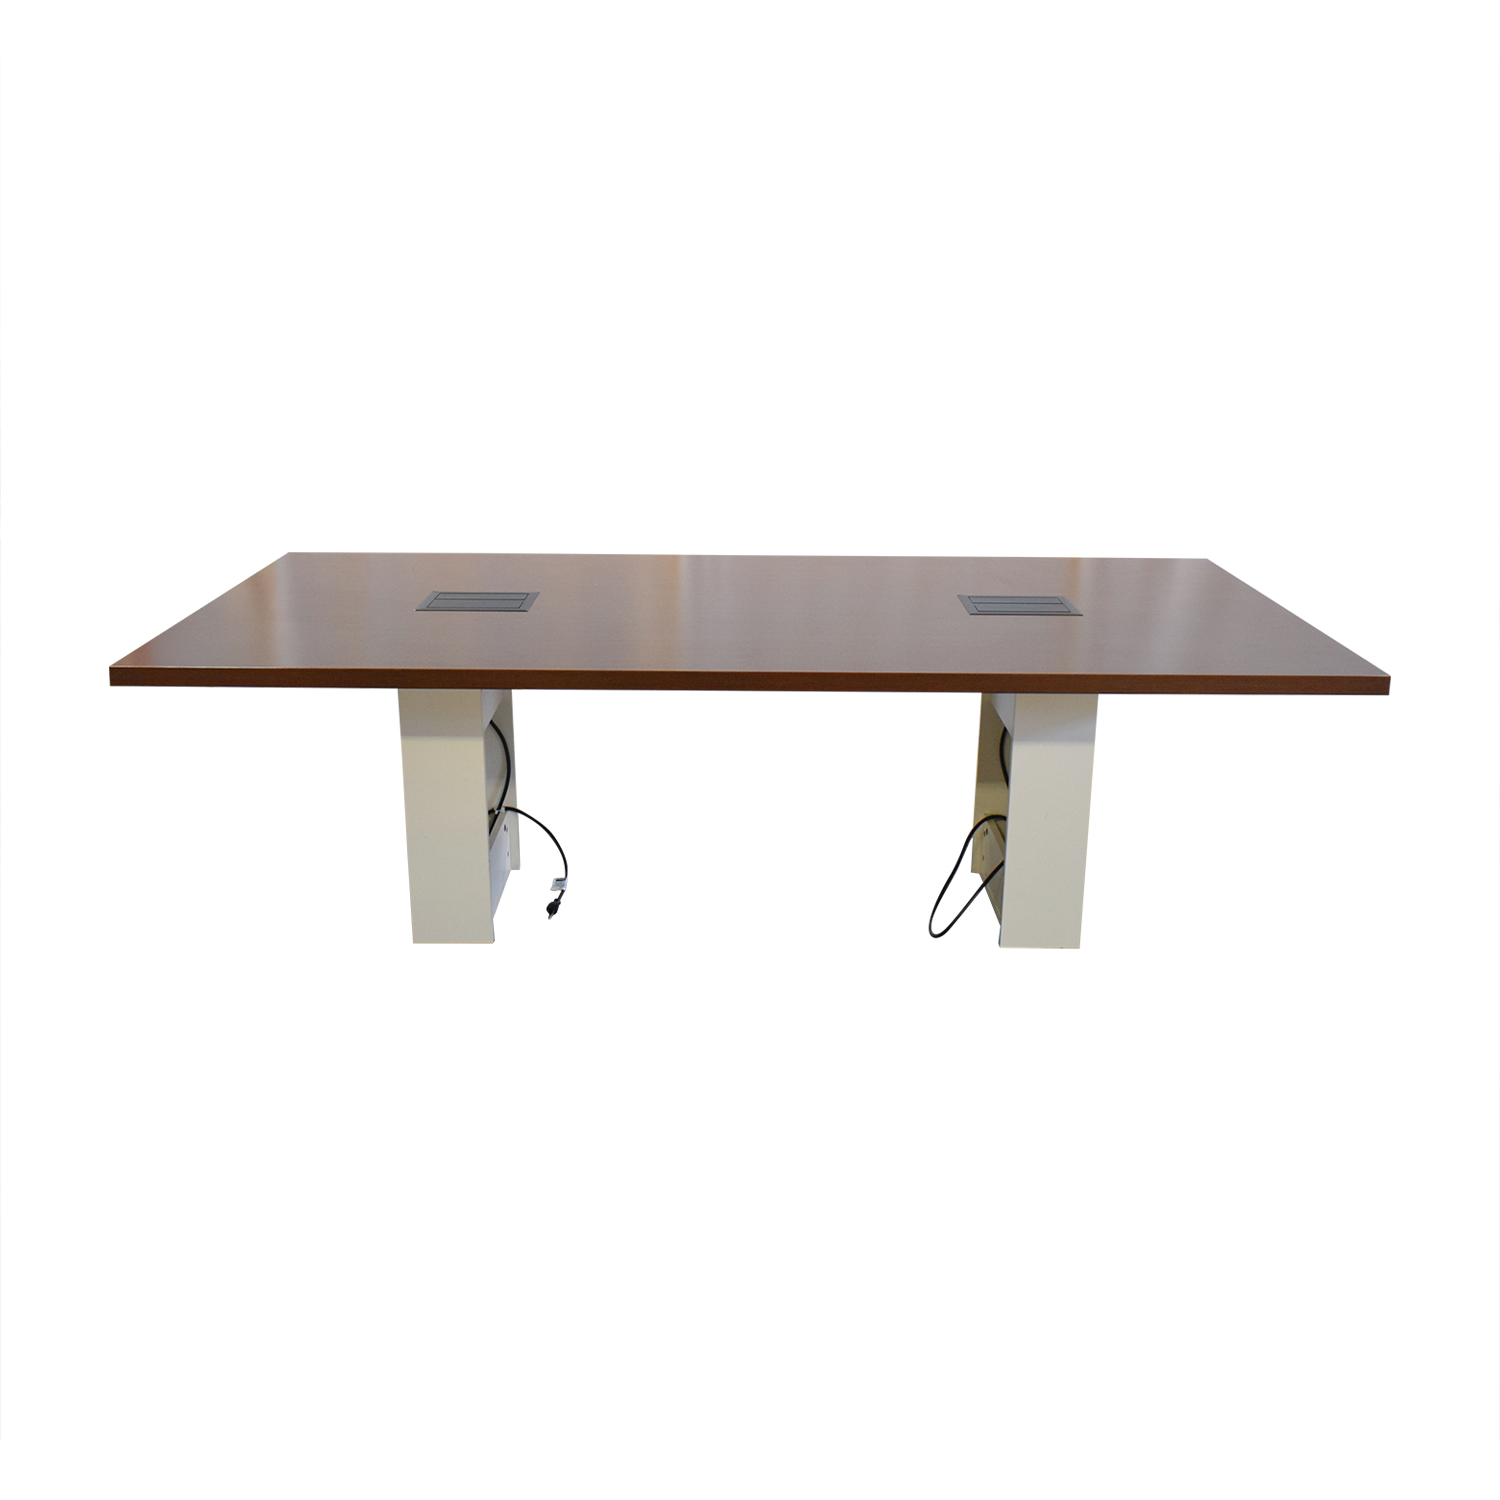 Kimball Kimball Conference Table coupon